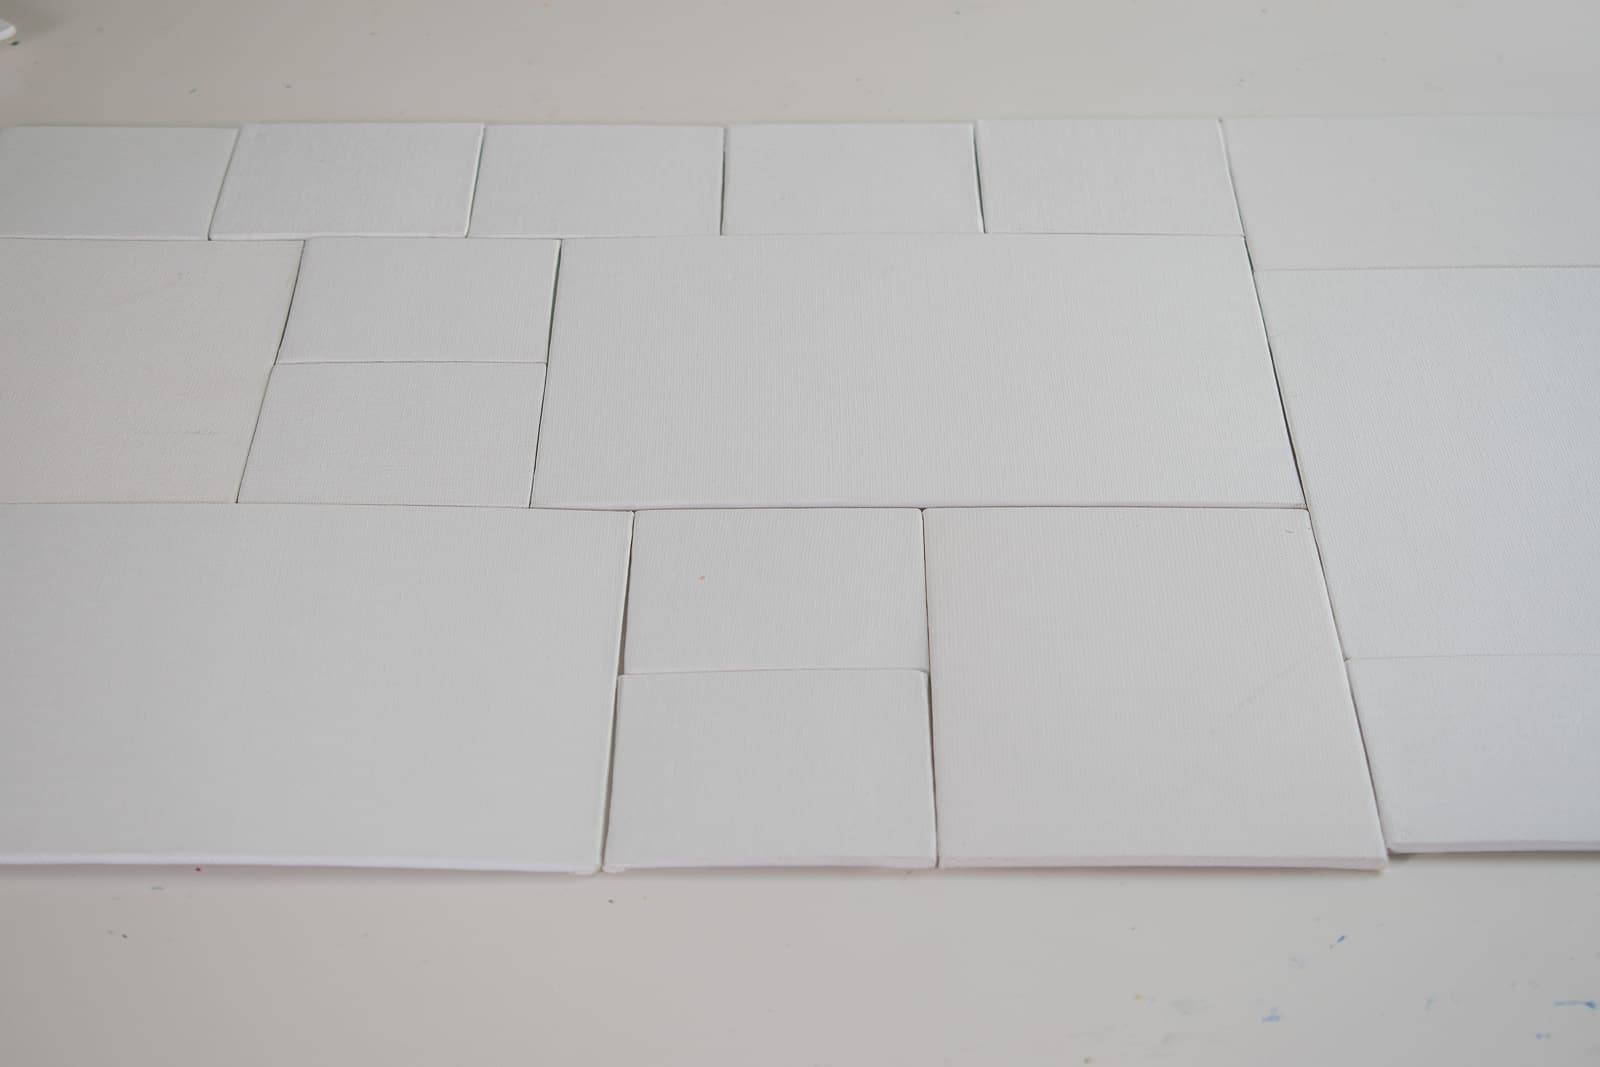 arrange the canvas boards